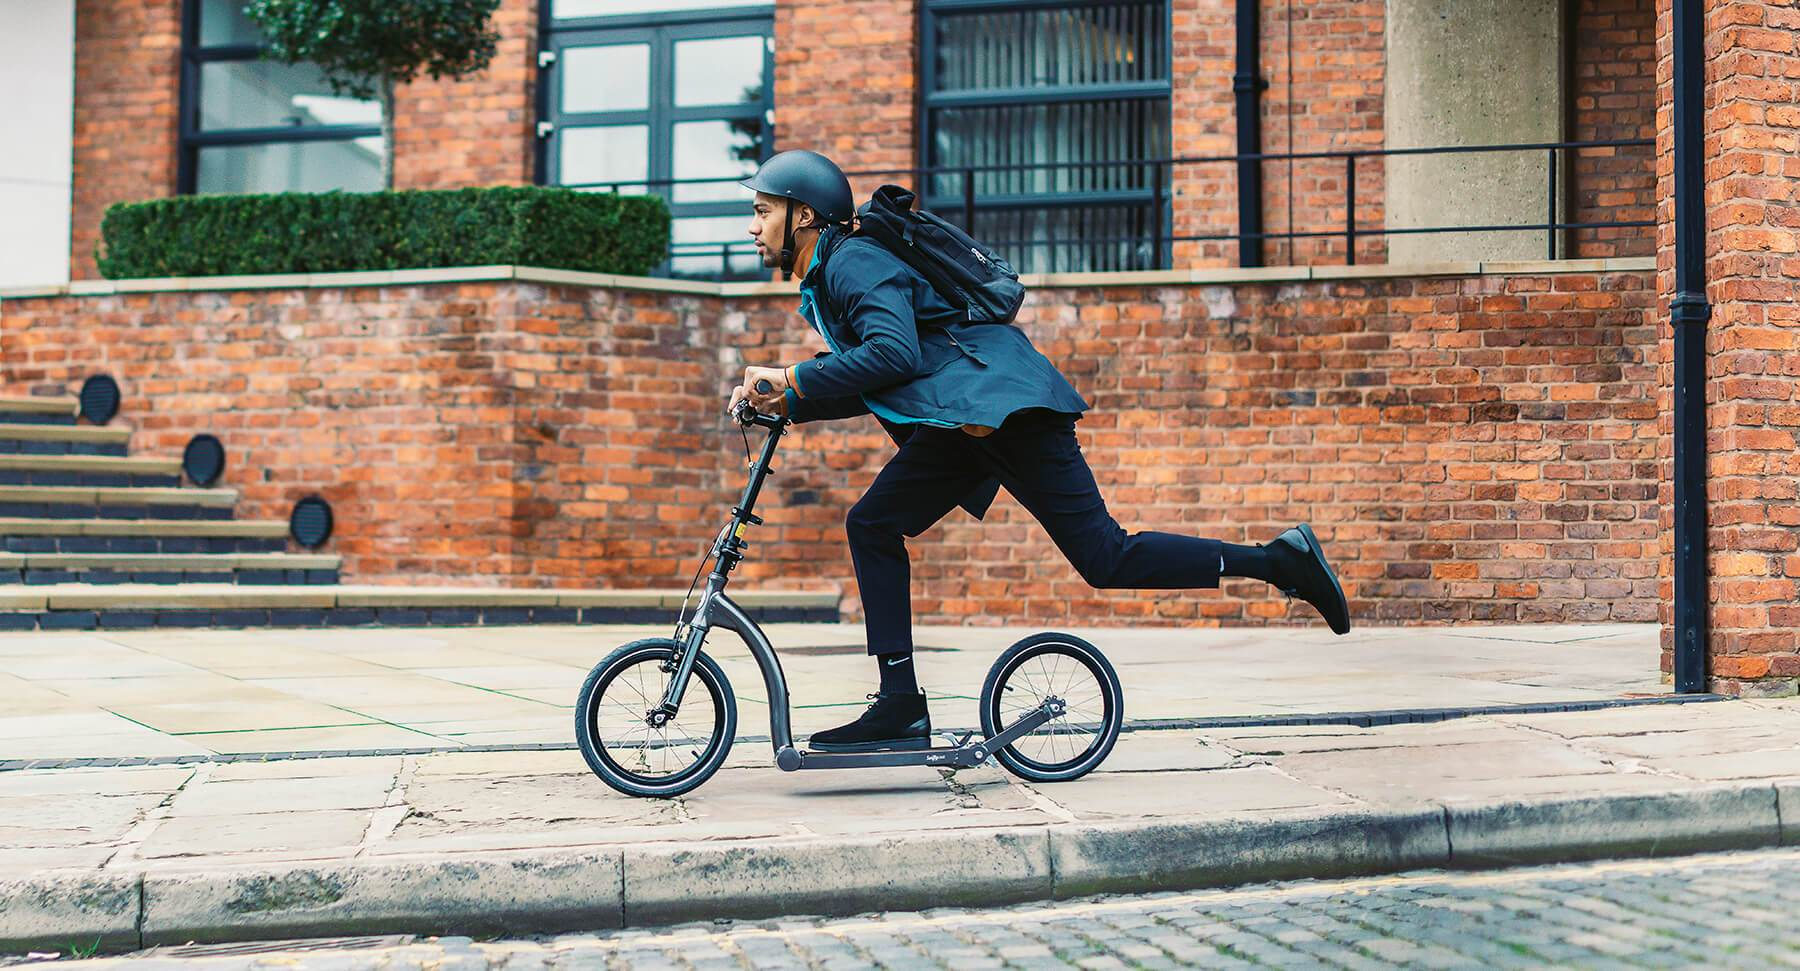 footbike vs kick scooter, what is the difference between a foot bike and a kick scooter